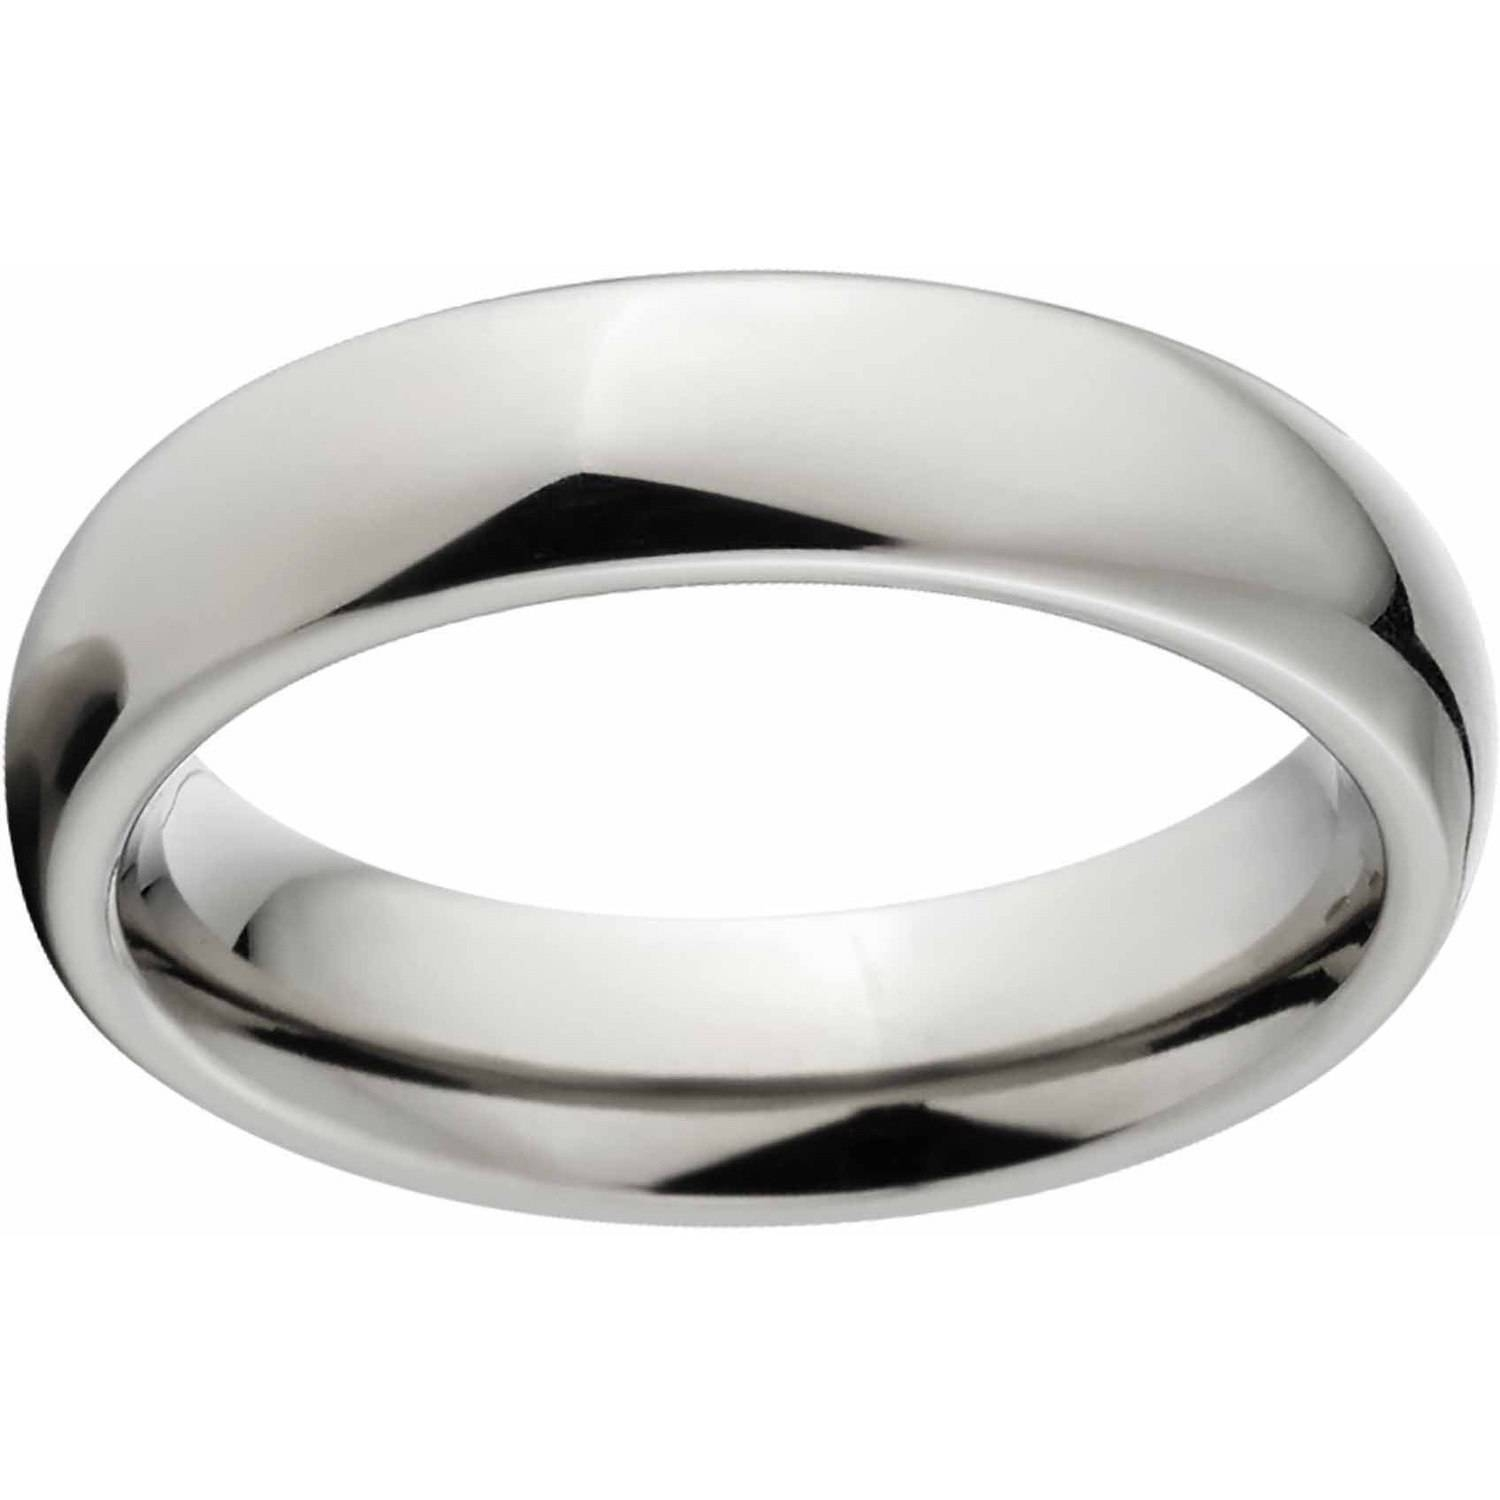 Silicone Ring With Diamond >> 2018 Popular Walmart Wedding Bands For Men